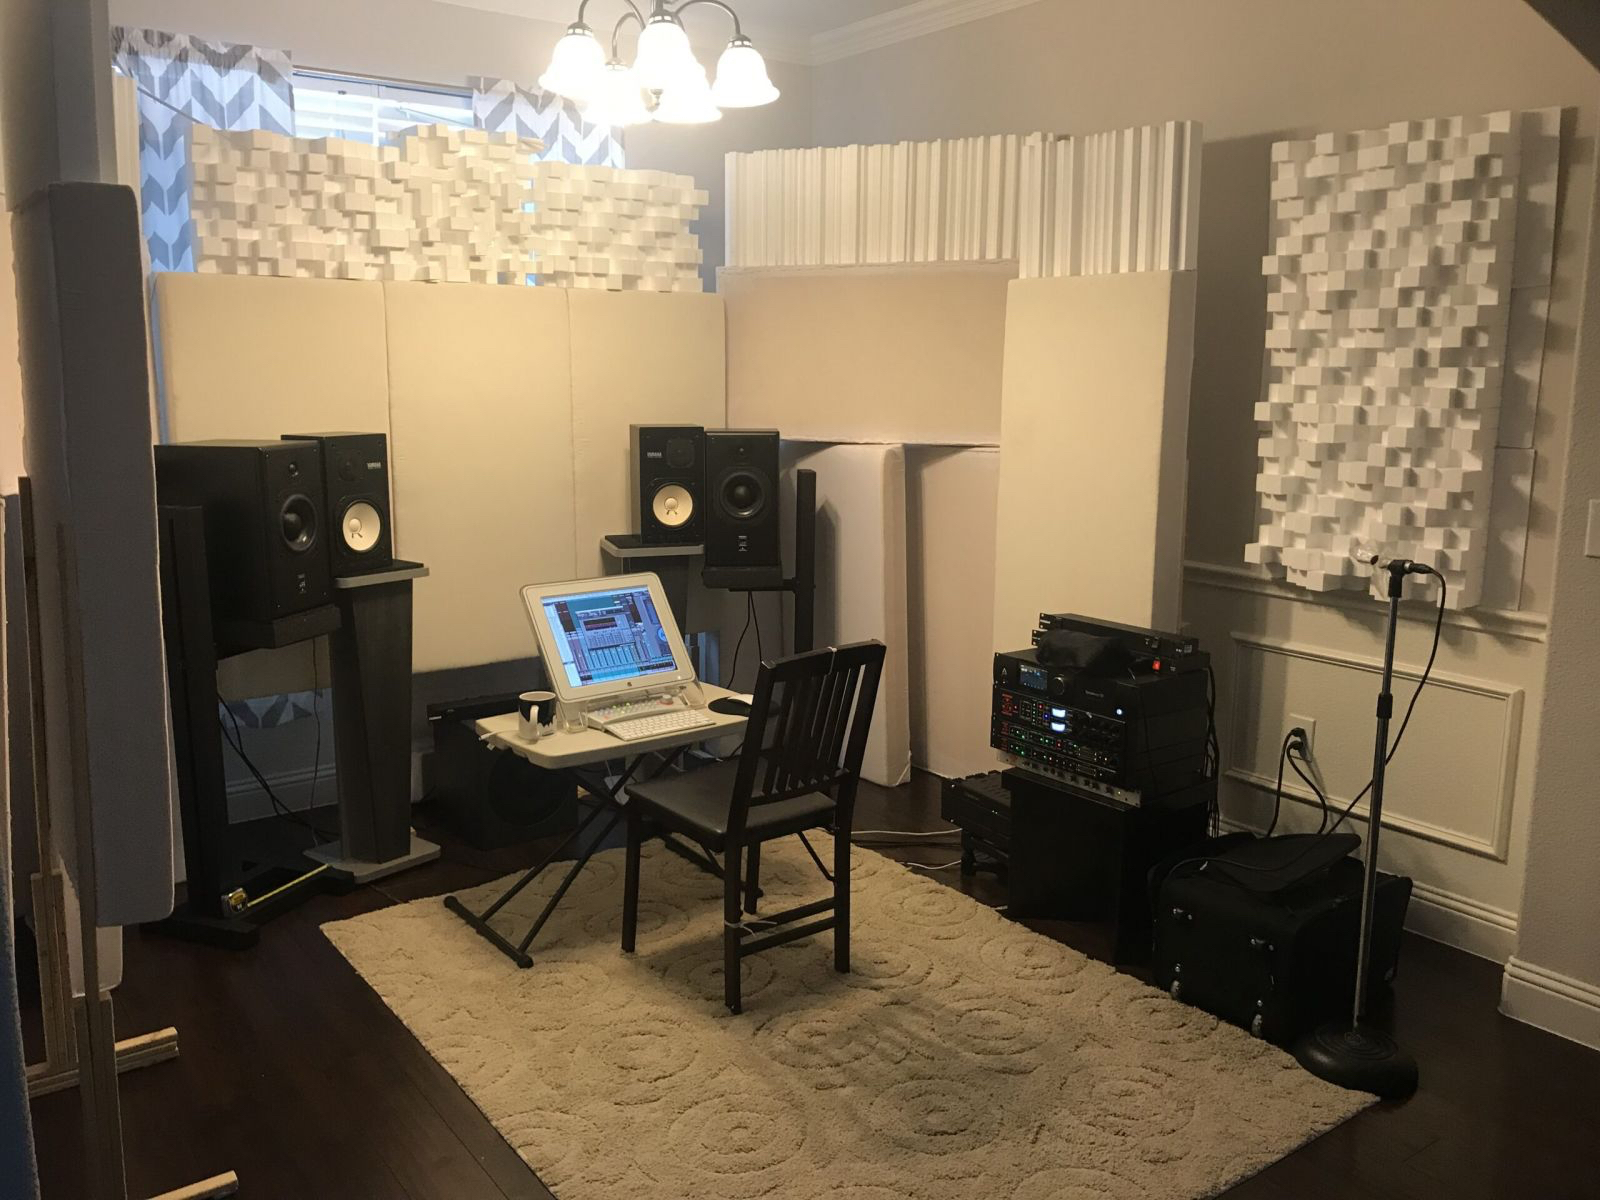 Facing the transition to home-based mixing and mastering